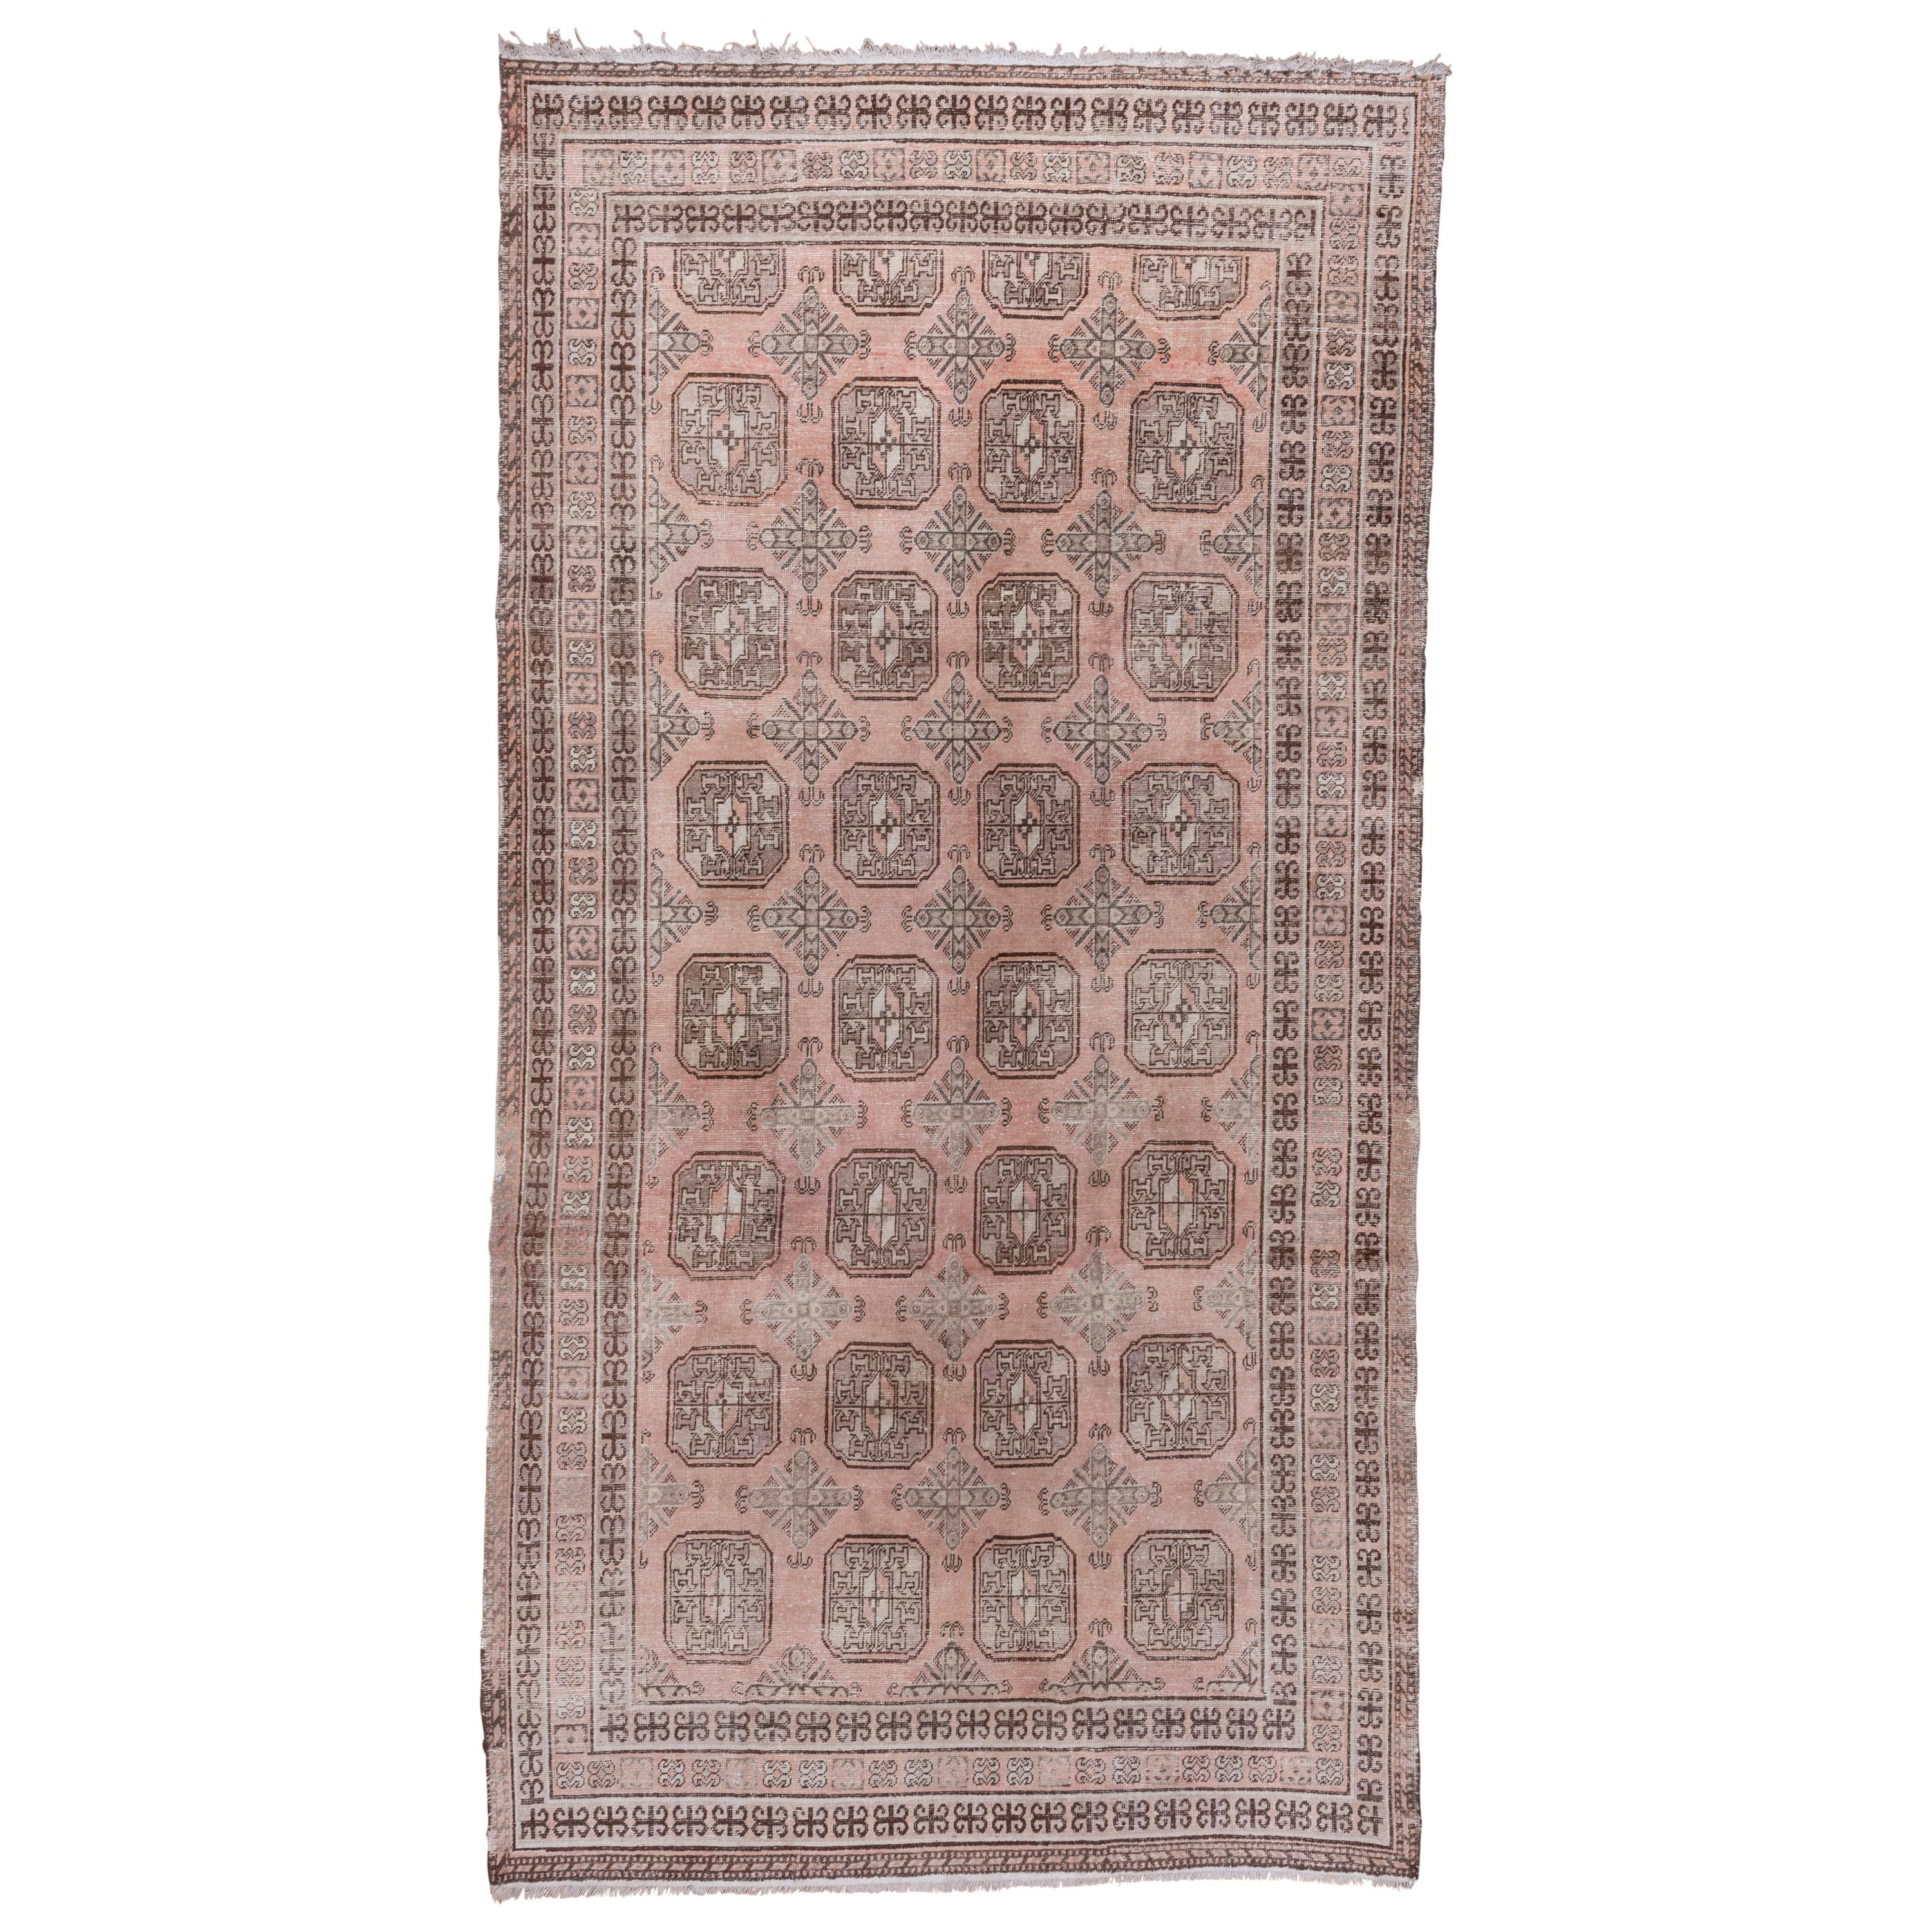 1920s Antique Pink Khotan Long Rug, All-Over Field, Ivory Accents